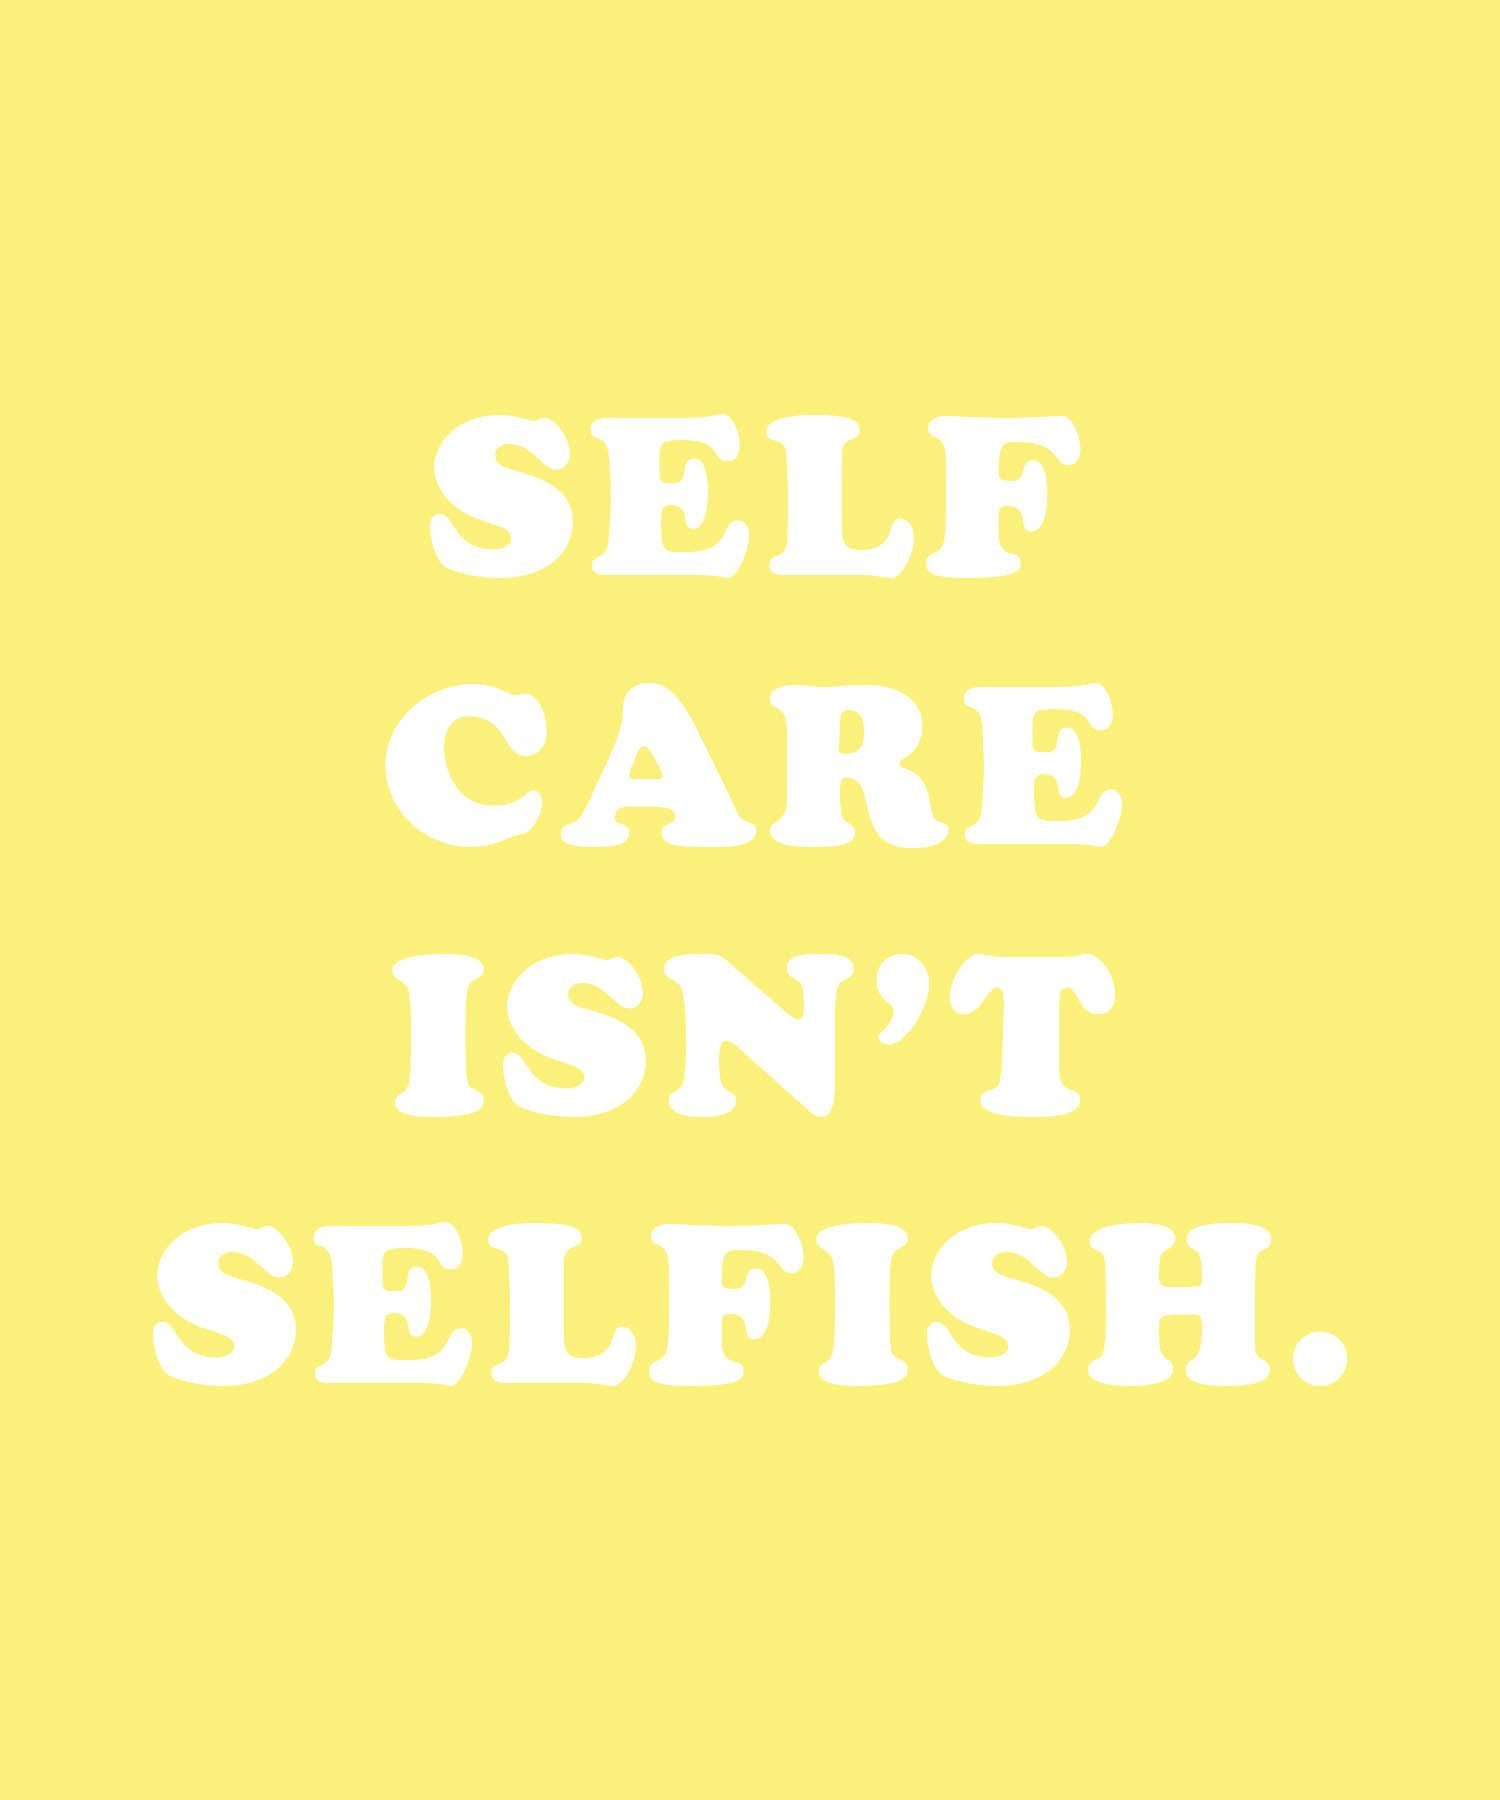 Self care isnt selfish Your mental health is just as important as your physical health Heres why you shouldnt feel guilty taking a mental health day when you need it